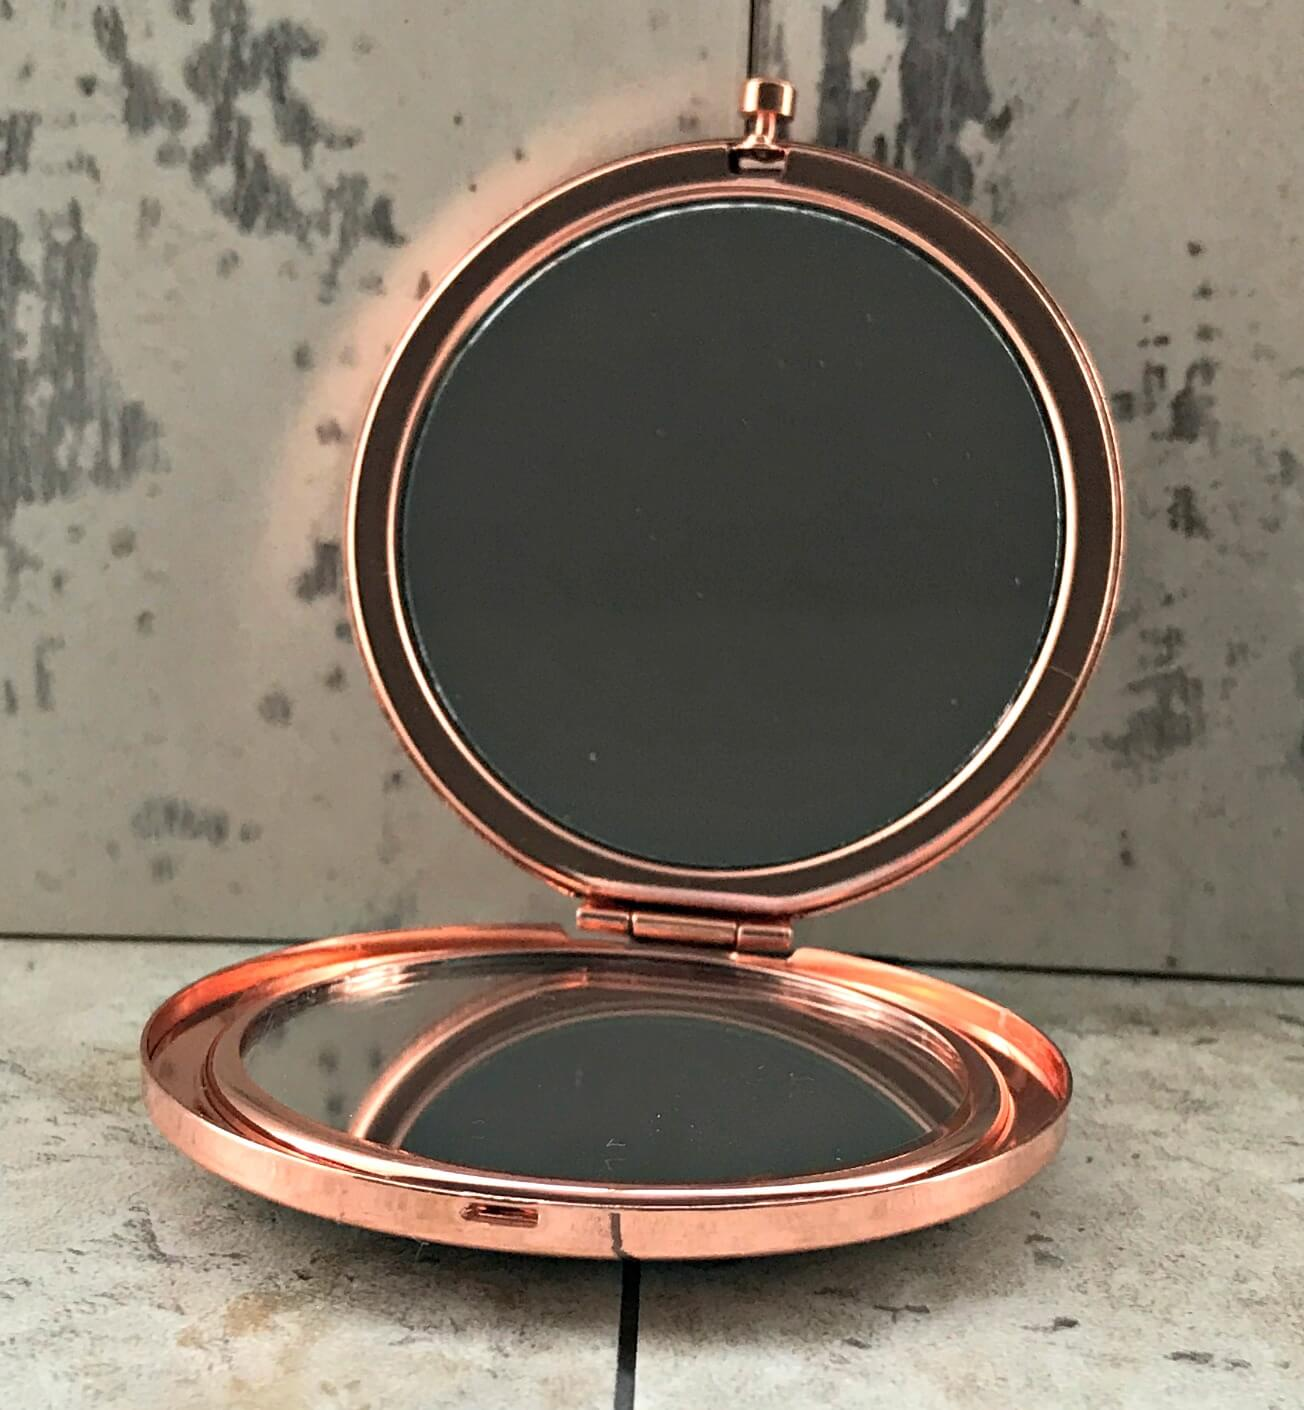 Mother's Day gifts on a budget - Home Bargains Diamond Compact Mirror